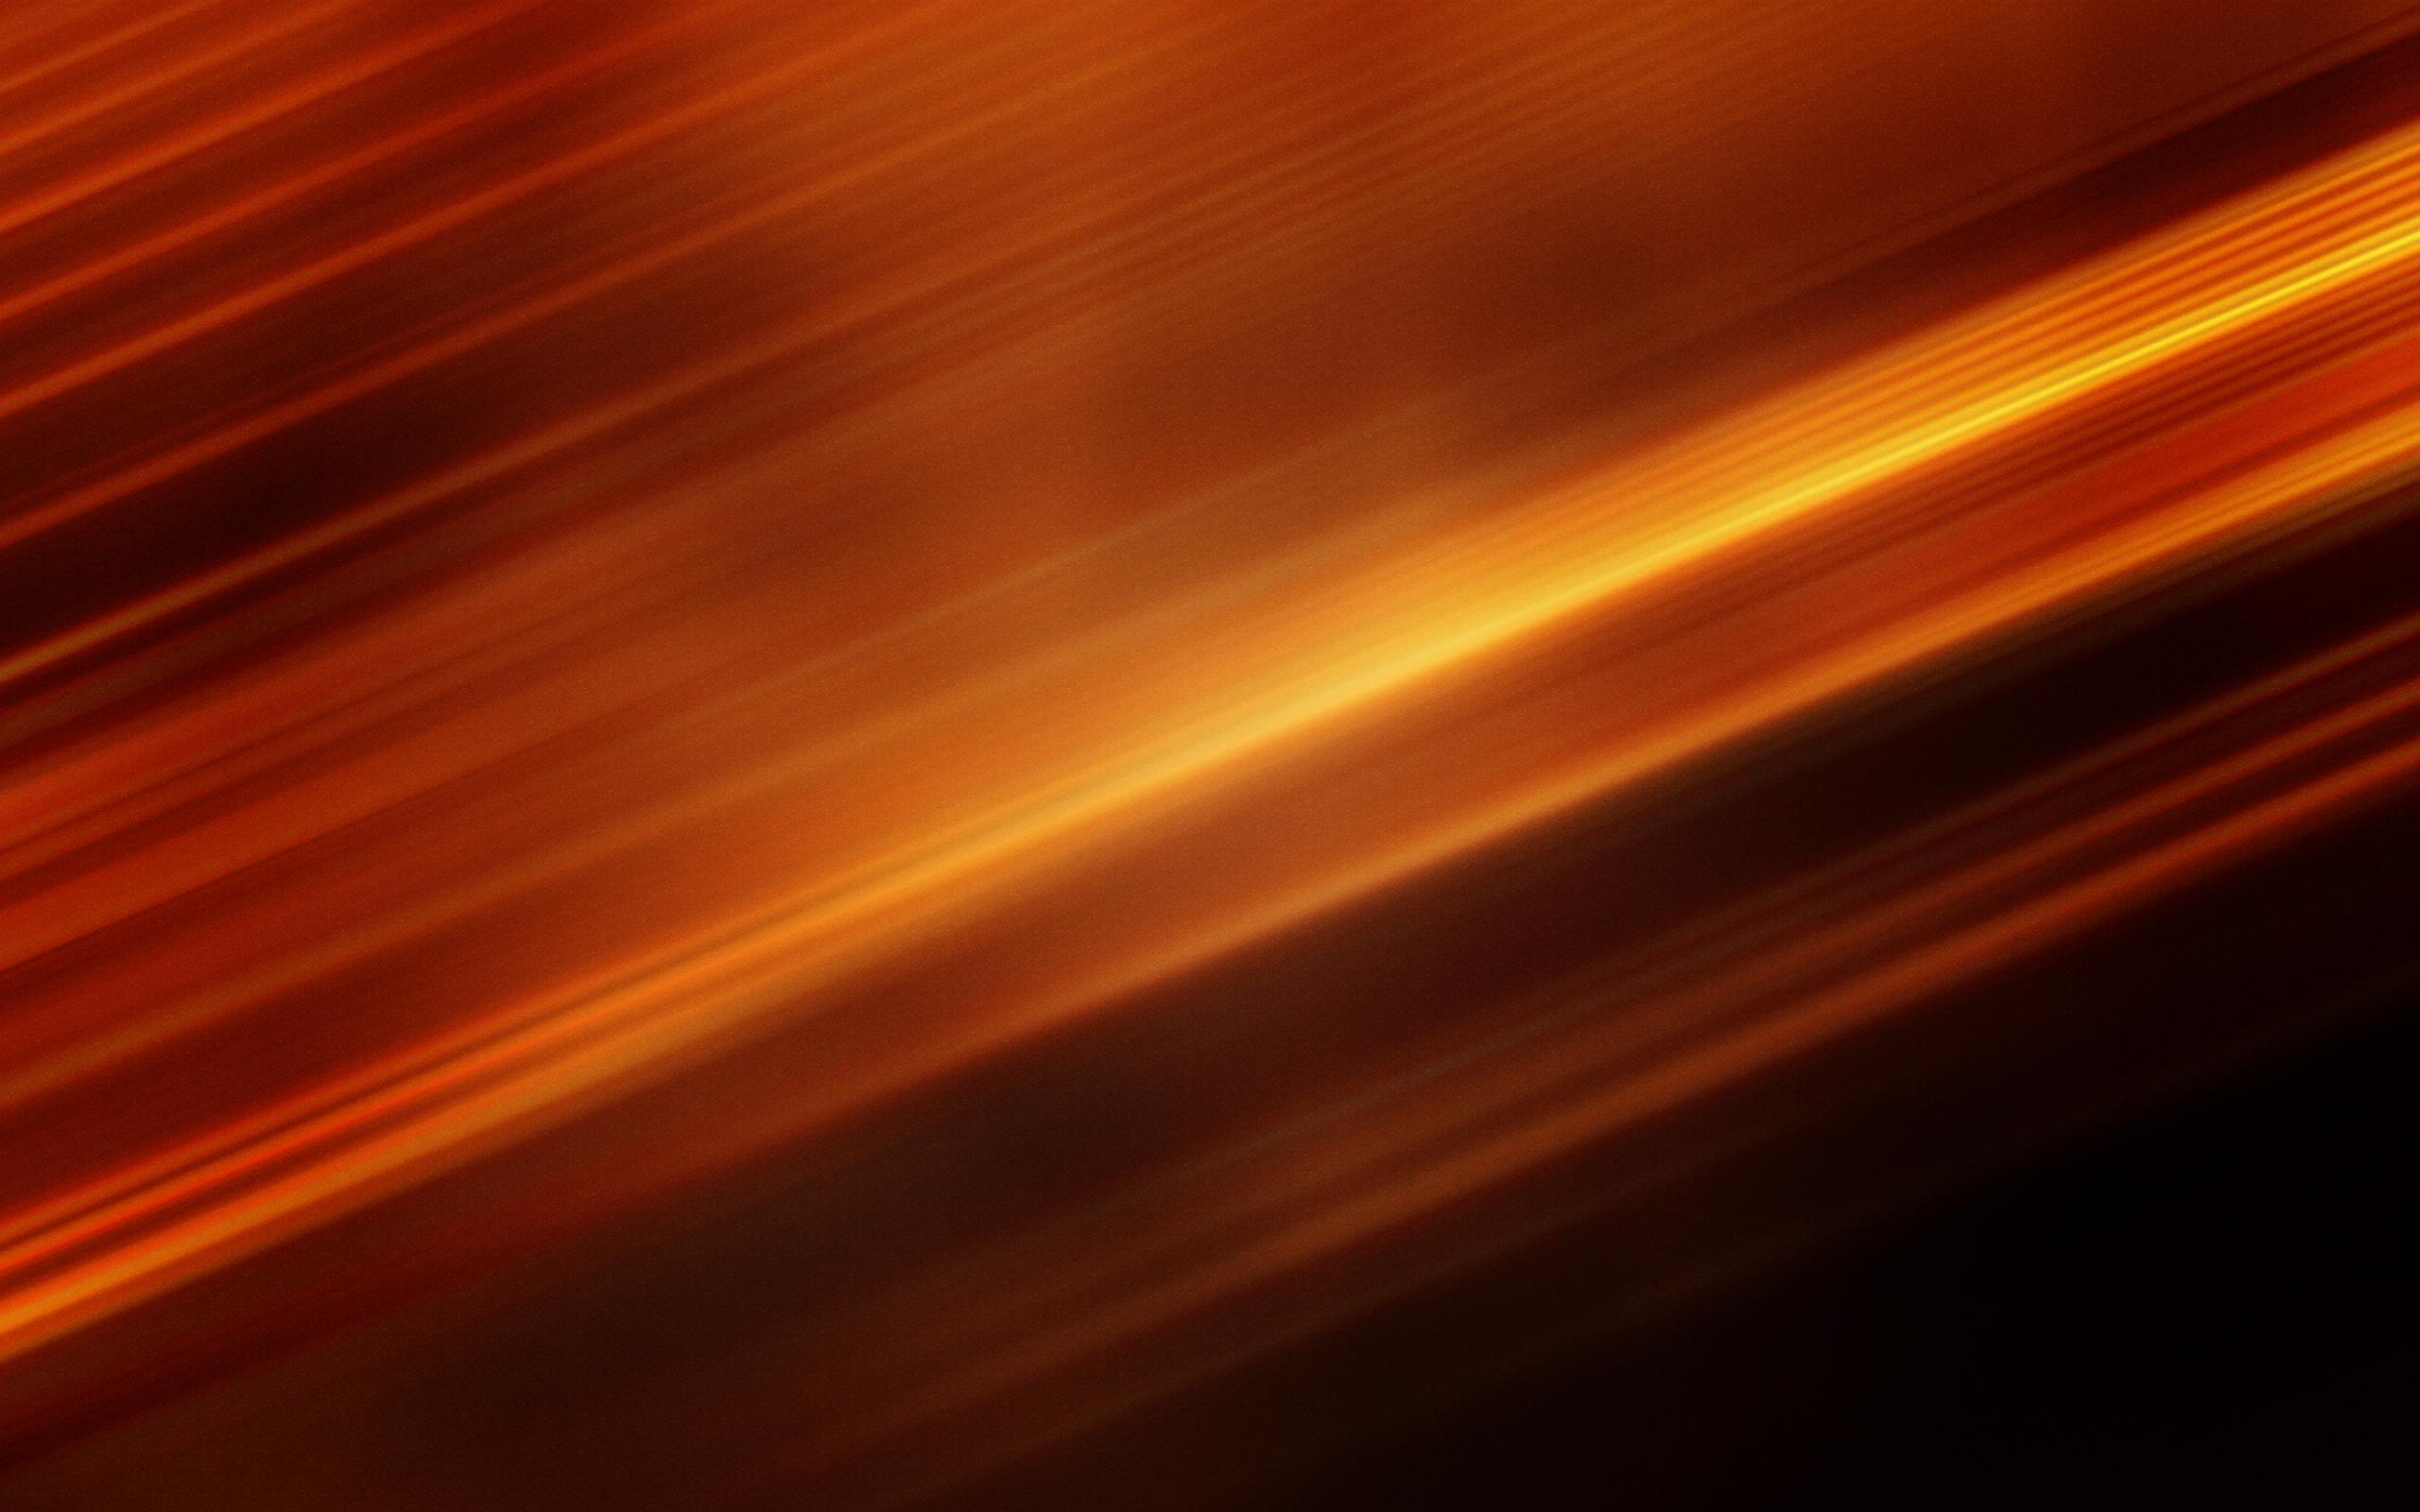 Обои на рабочий стол - Abstract Wallpapers Pack (31 ...: go2load.com/image/wallpapers/page/5